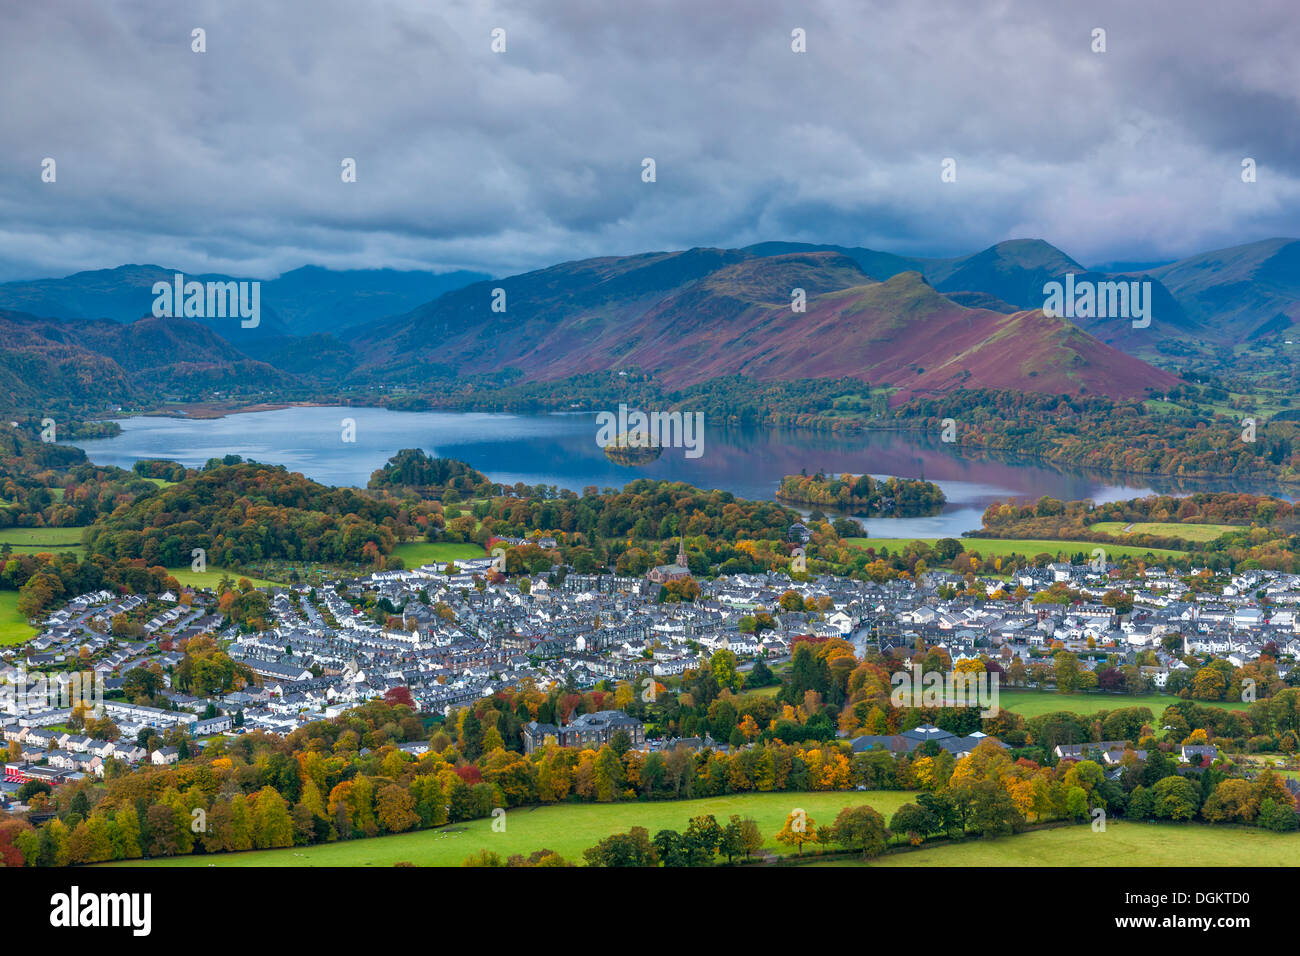 View over Keswick and Derwent Water from Latrigg summit towards Derwent Fells. - Stock Image